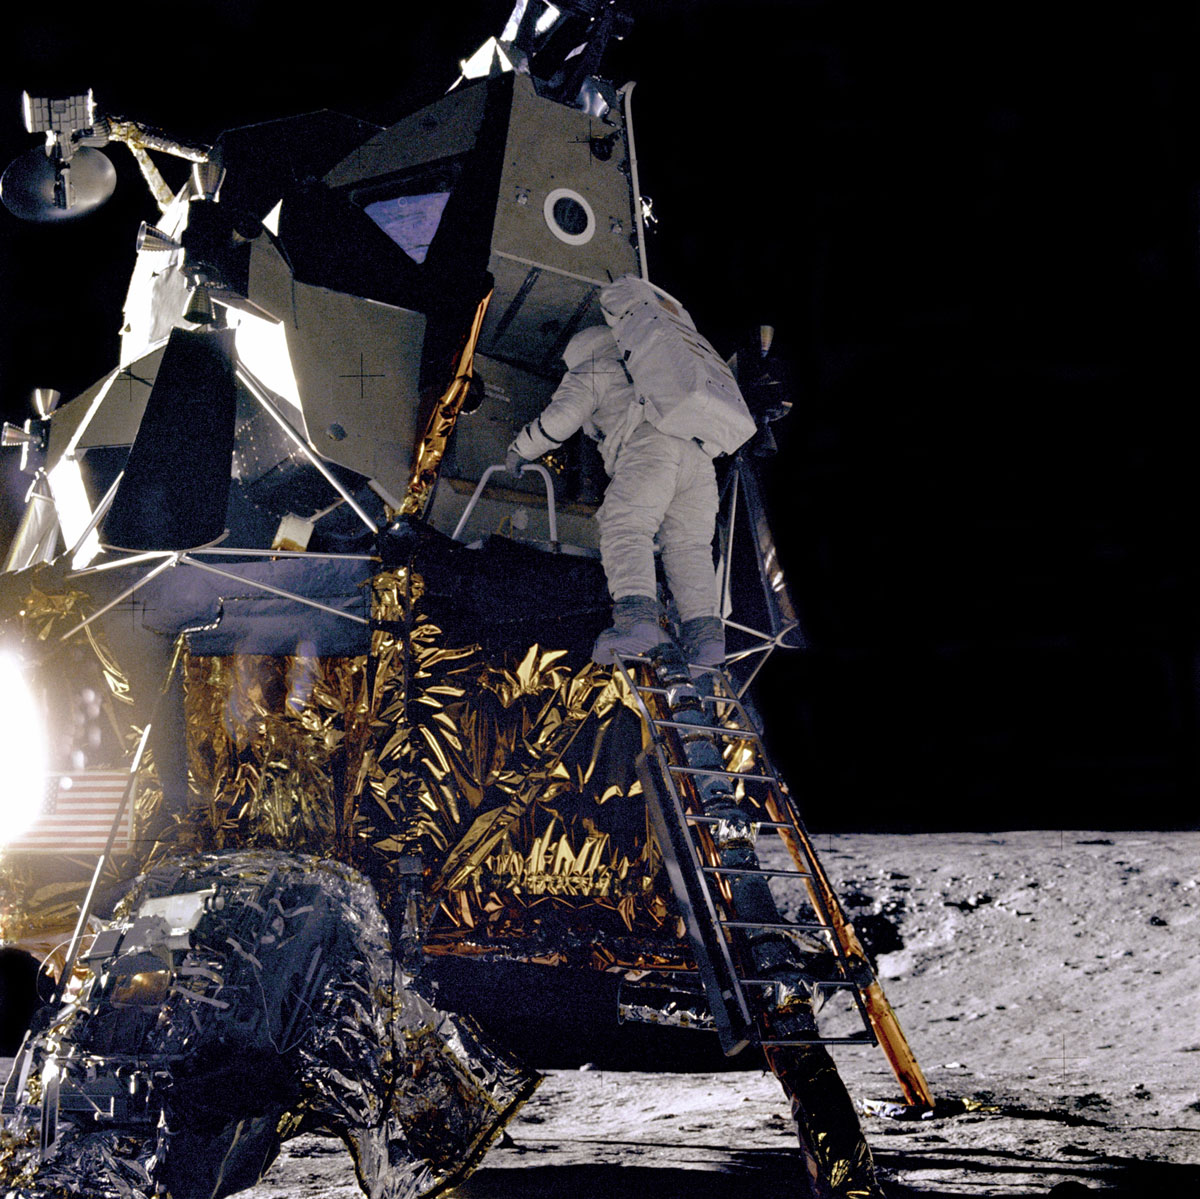 Apollo 12: Lunar Module Intrepid On the Moon | NASA